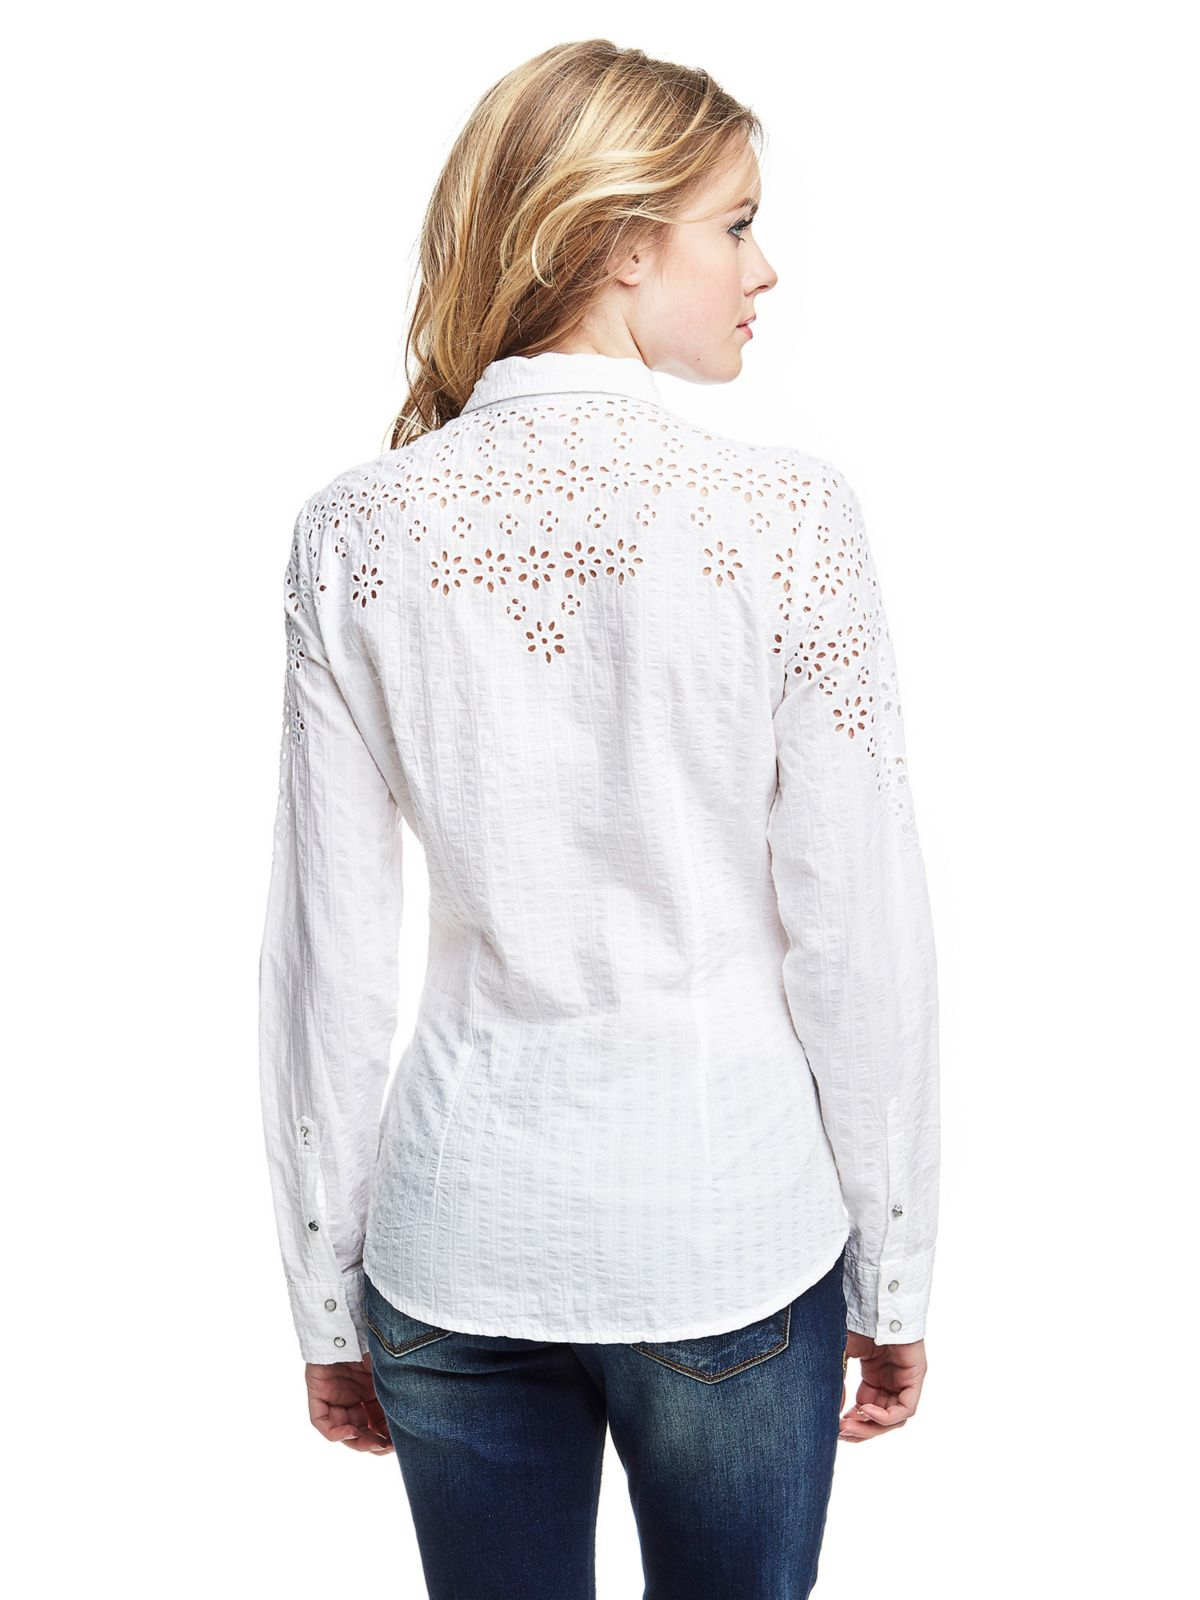 Guess Shirt With Lace Inserts in White | Lyst